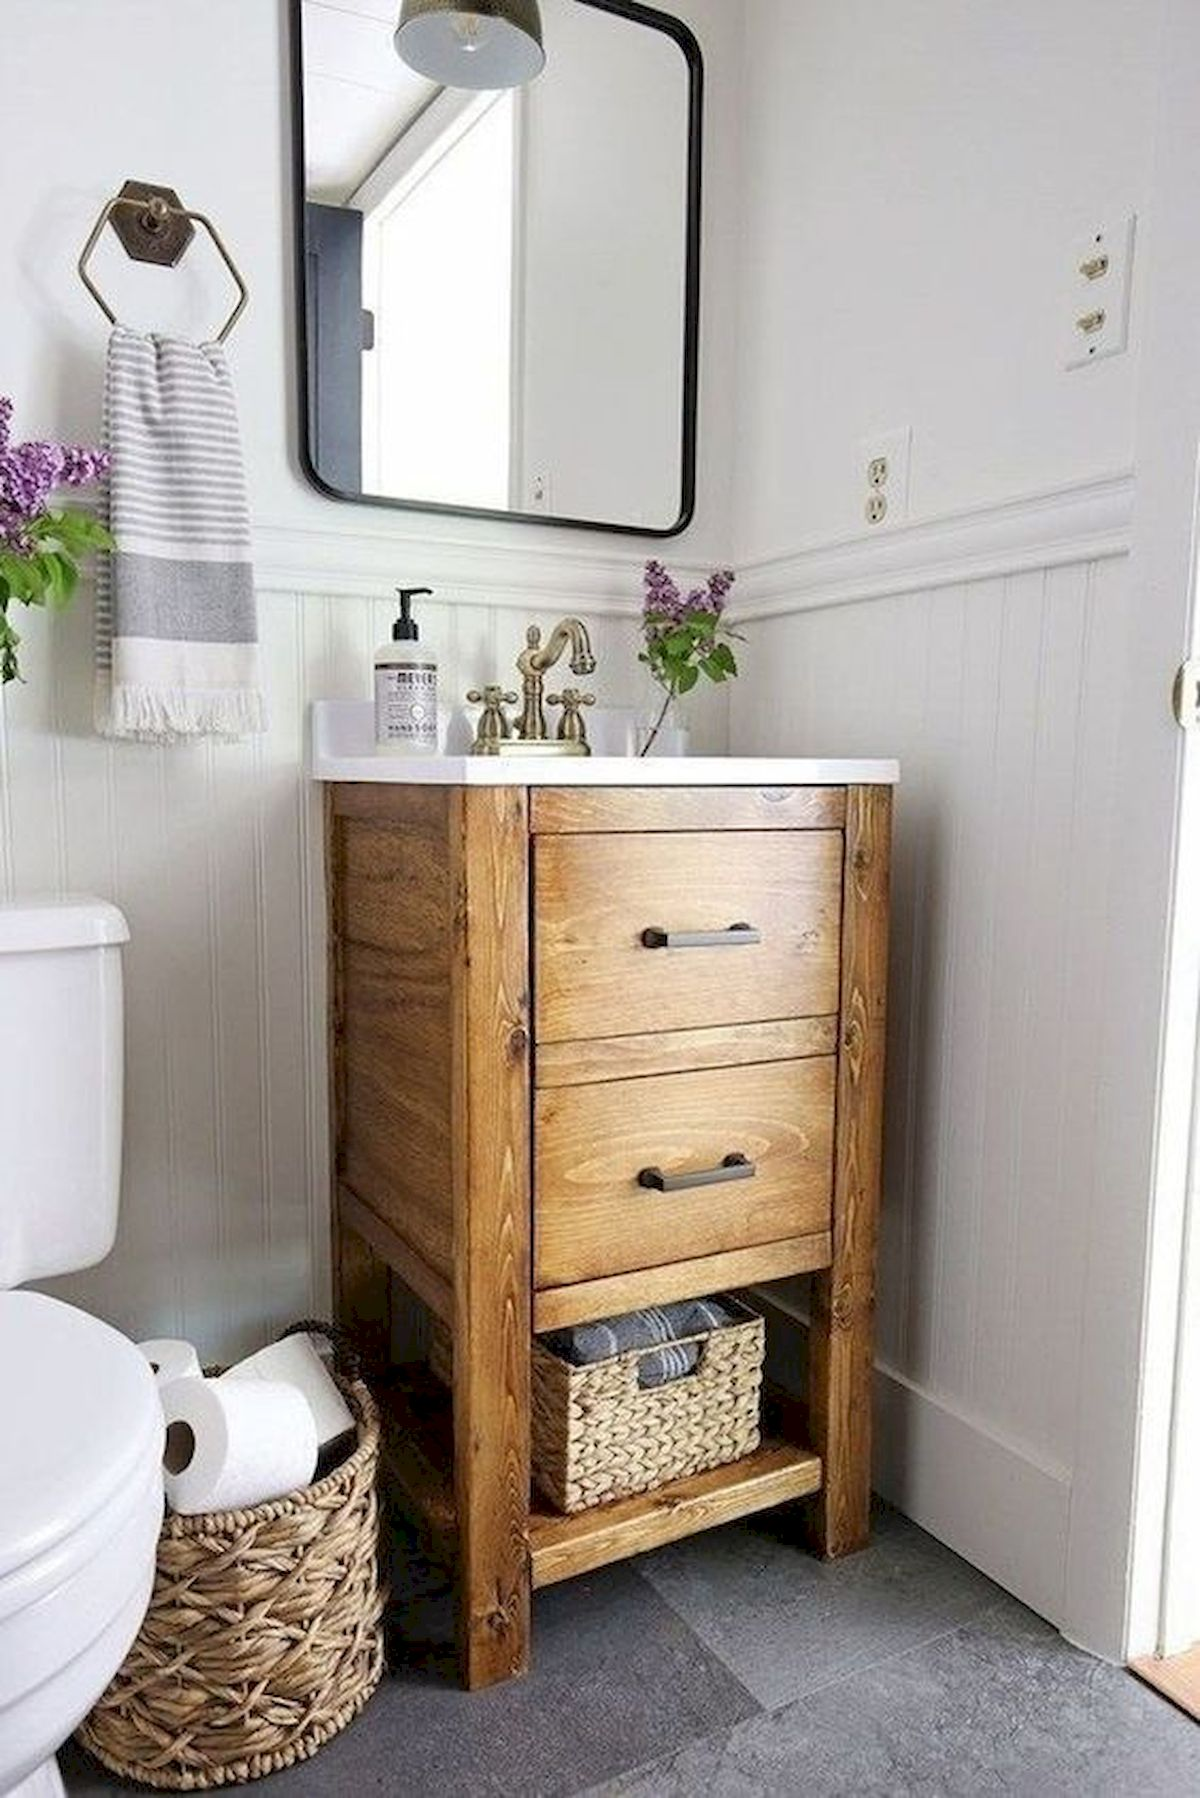 50 Best DIY Storage Design Ideas to Maximize Your Small Bathroom Space (17)